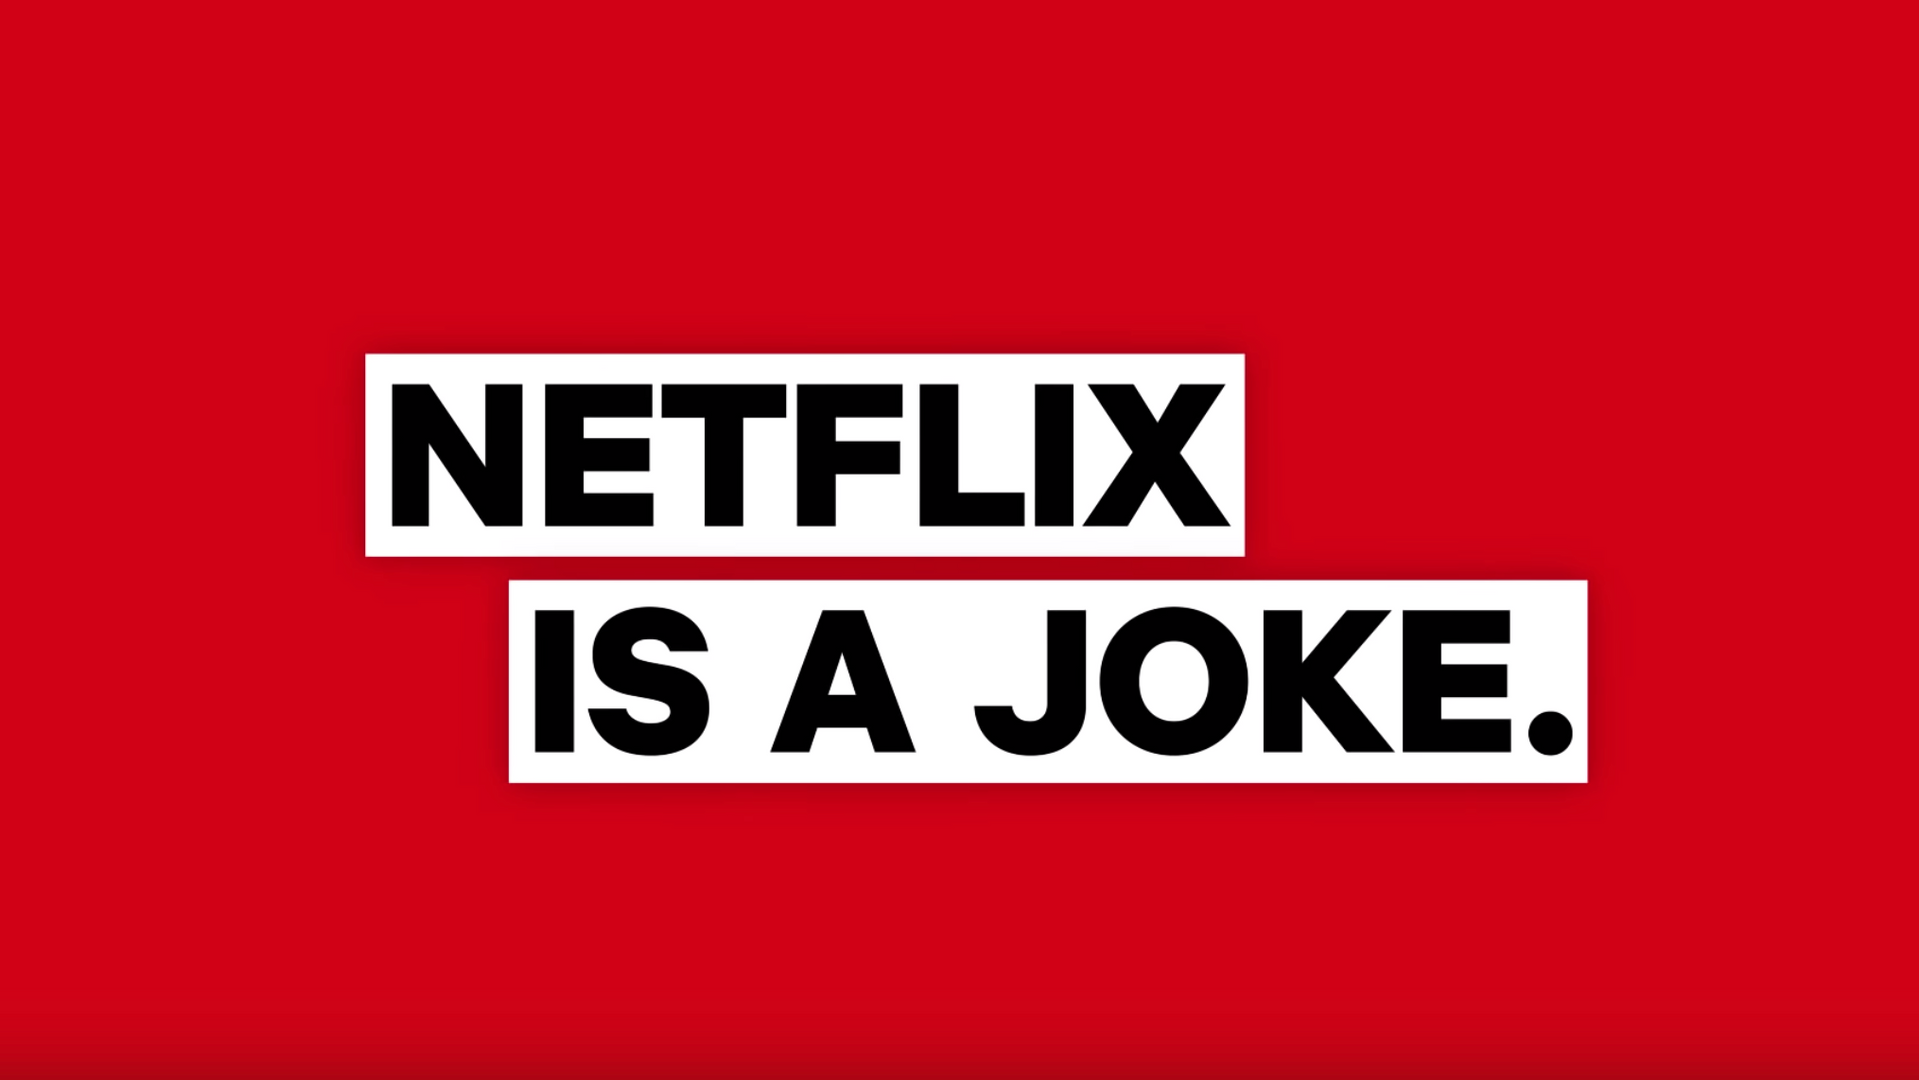 netflix-is-a-joke-sirius-xm.png